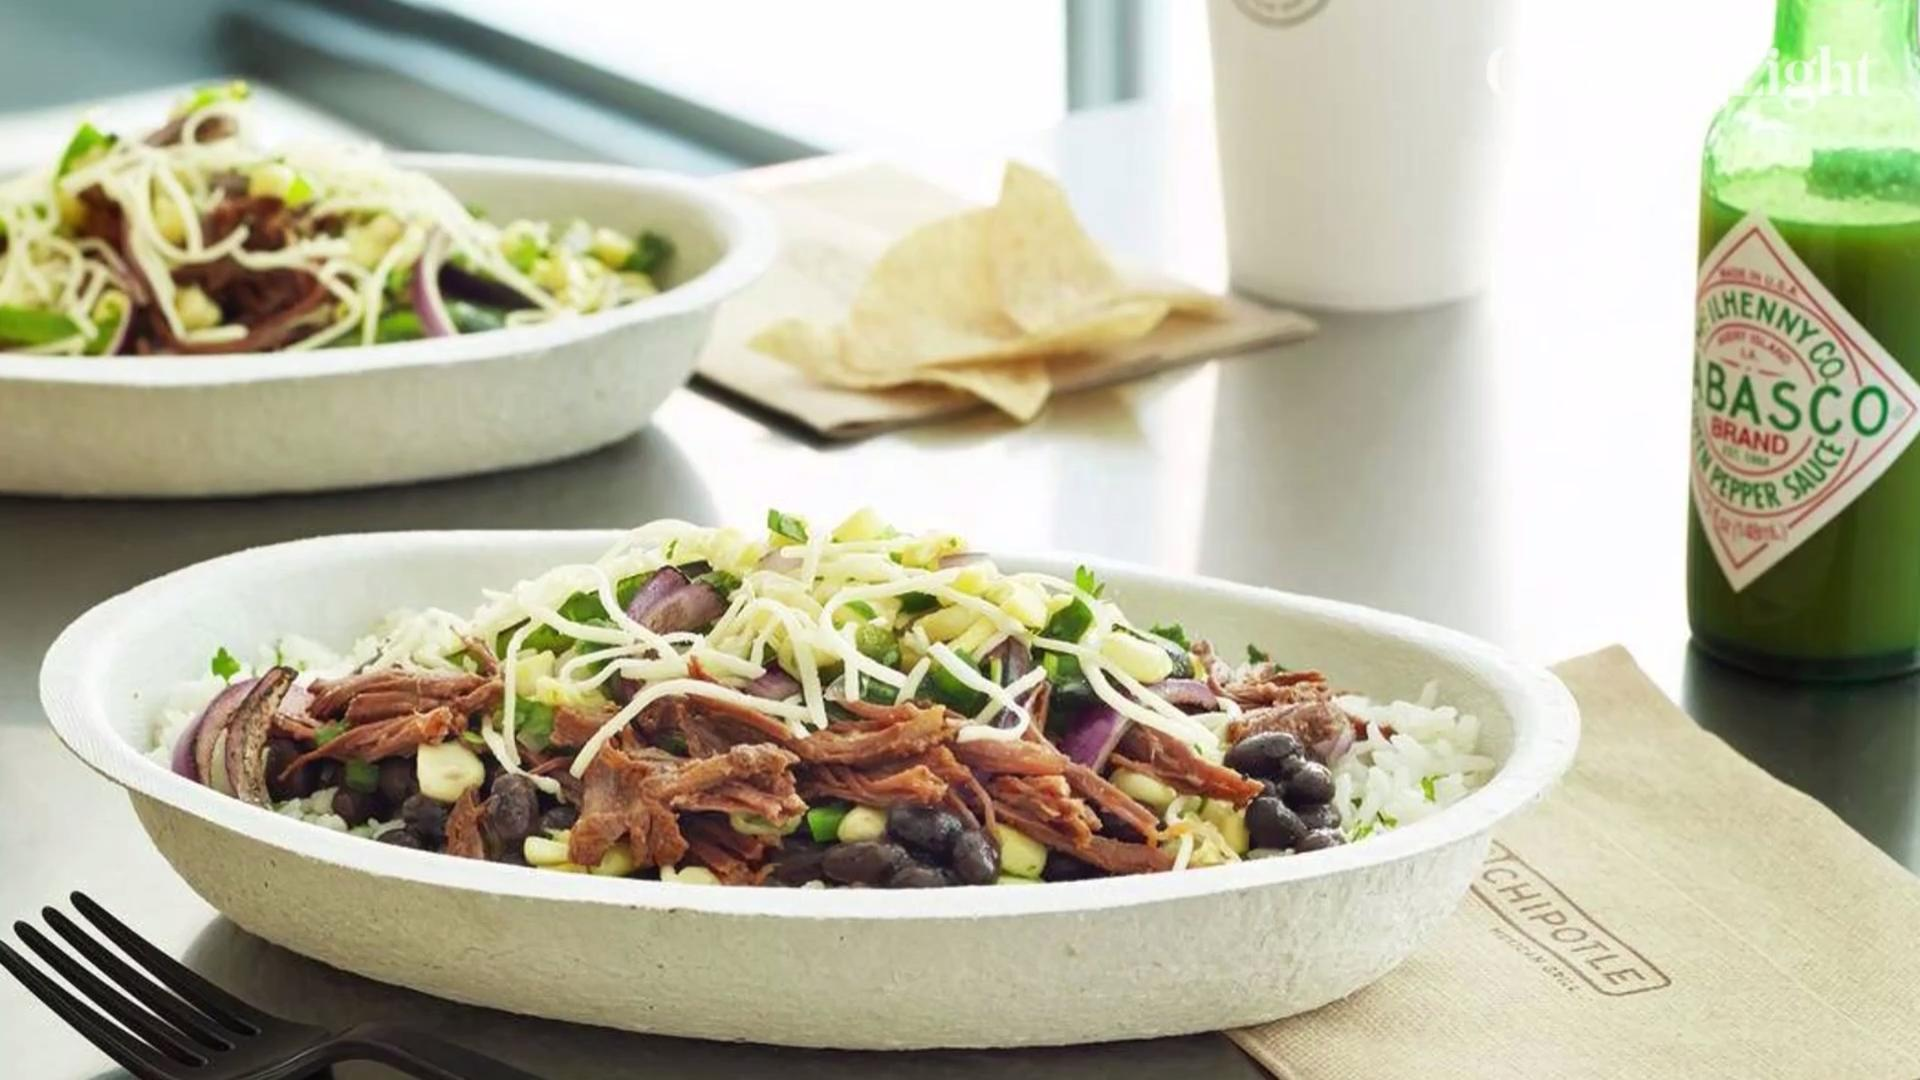 These are the Healthiest Meal Choices at 35 Popular Chain Restaurants